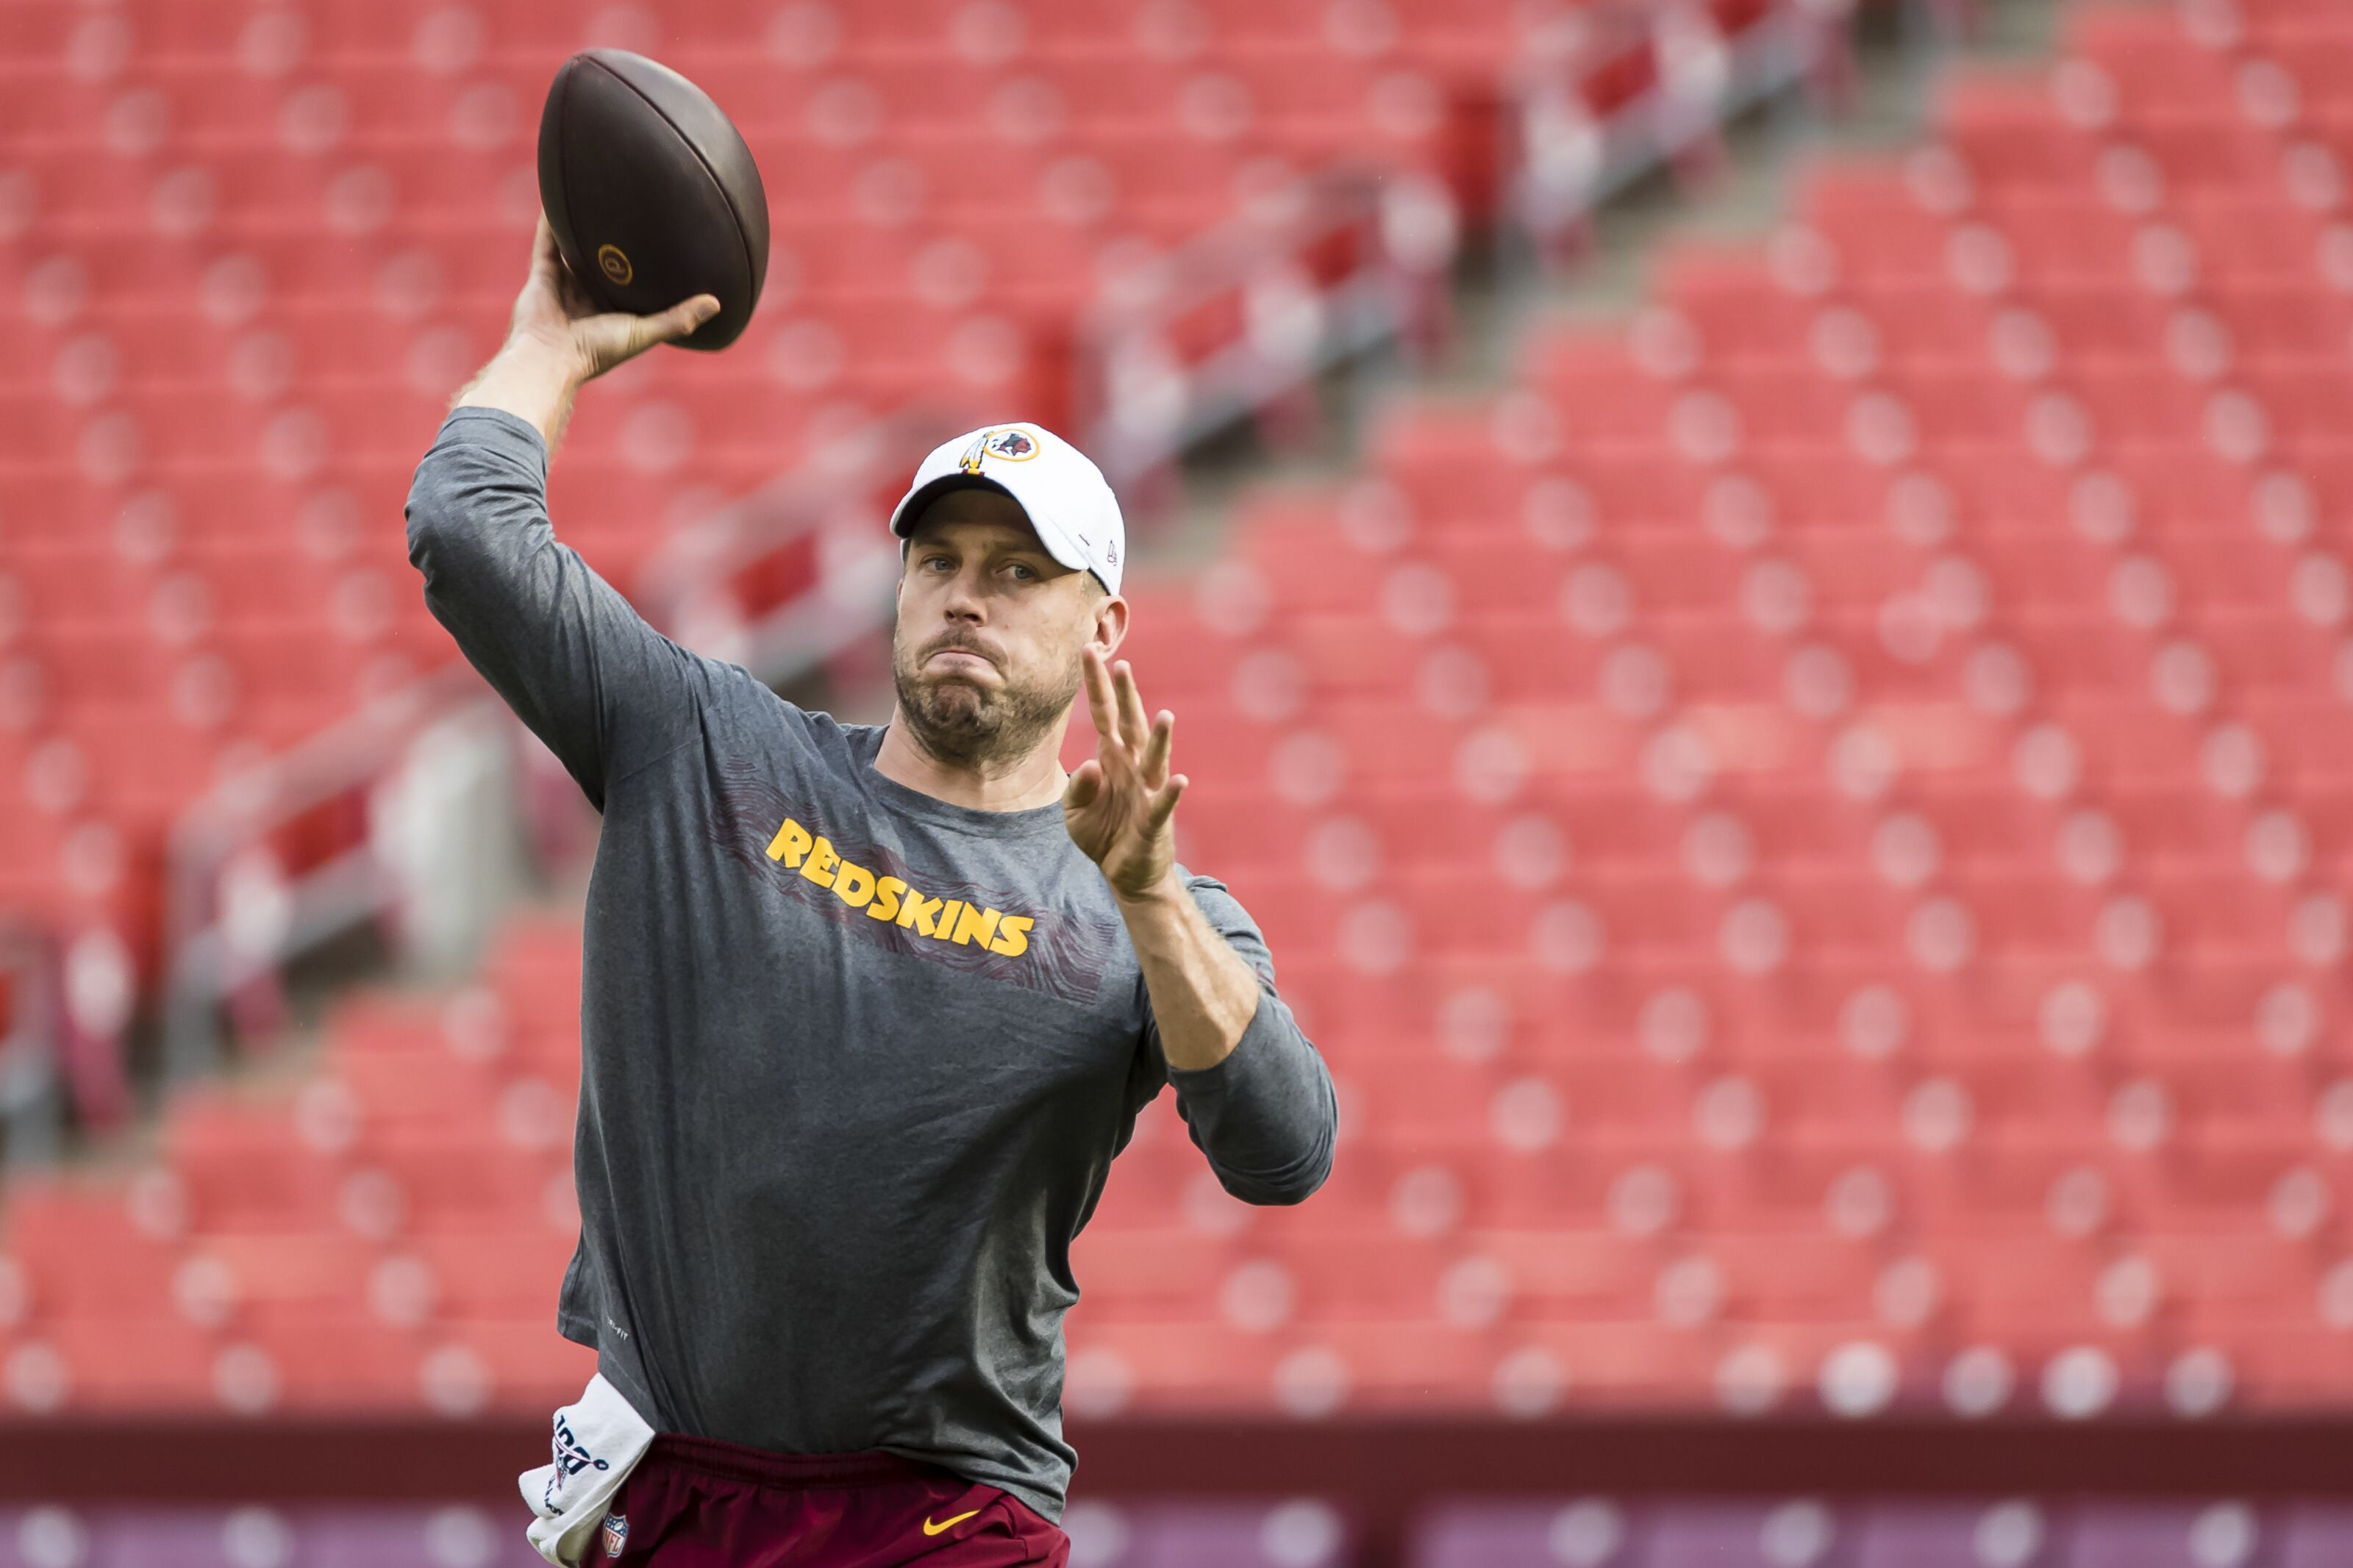 Case Keenum named Washington Redskins starter over Colt McCoy